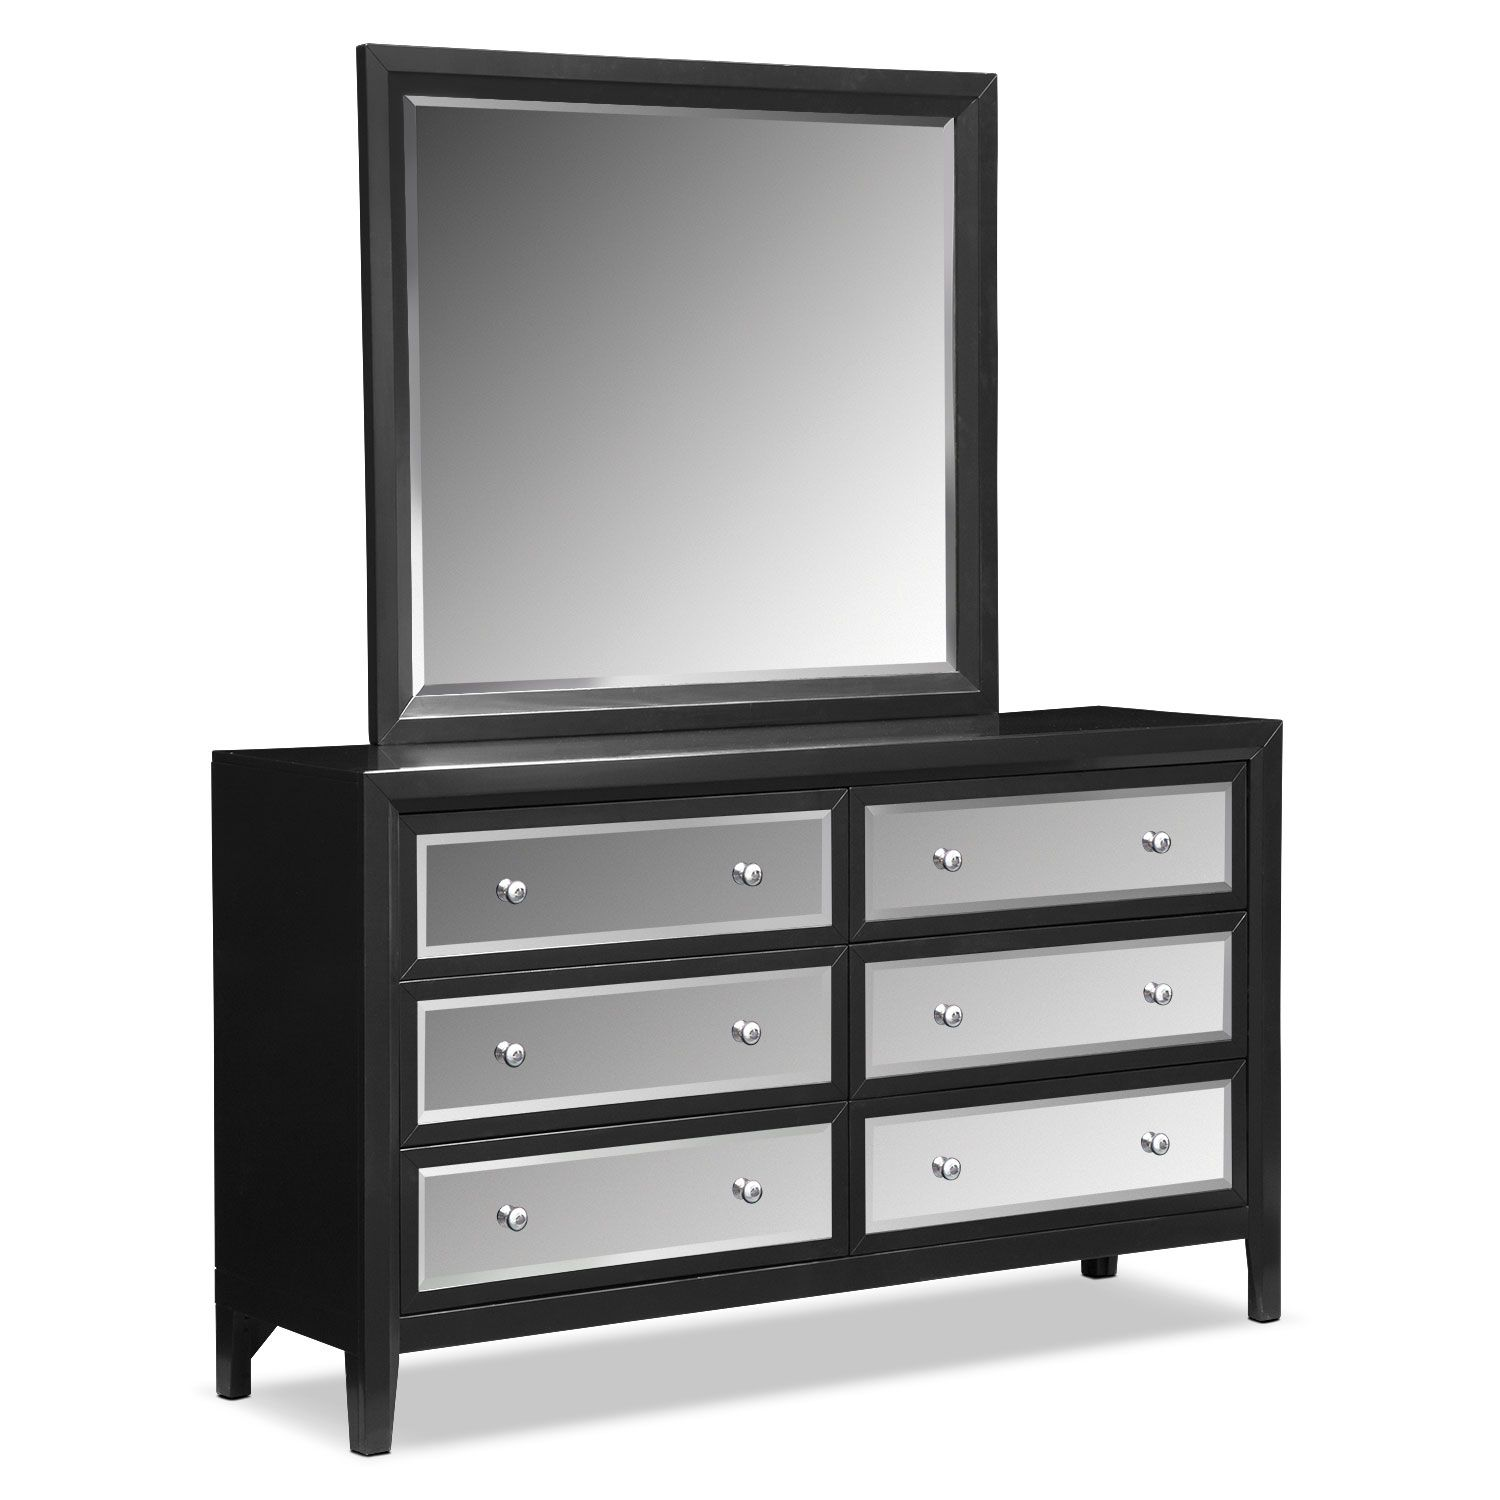 Bedroom Furniture Bonita Dresser And Mirror Black Mirrored